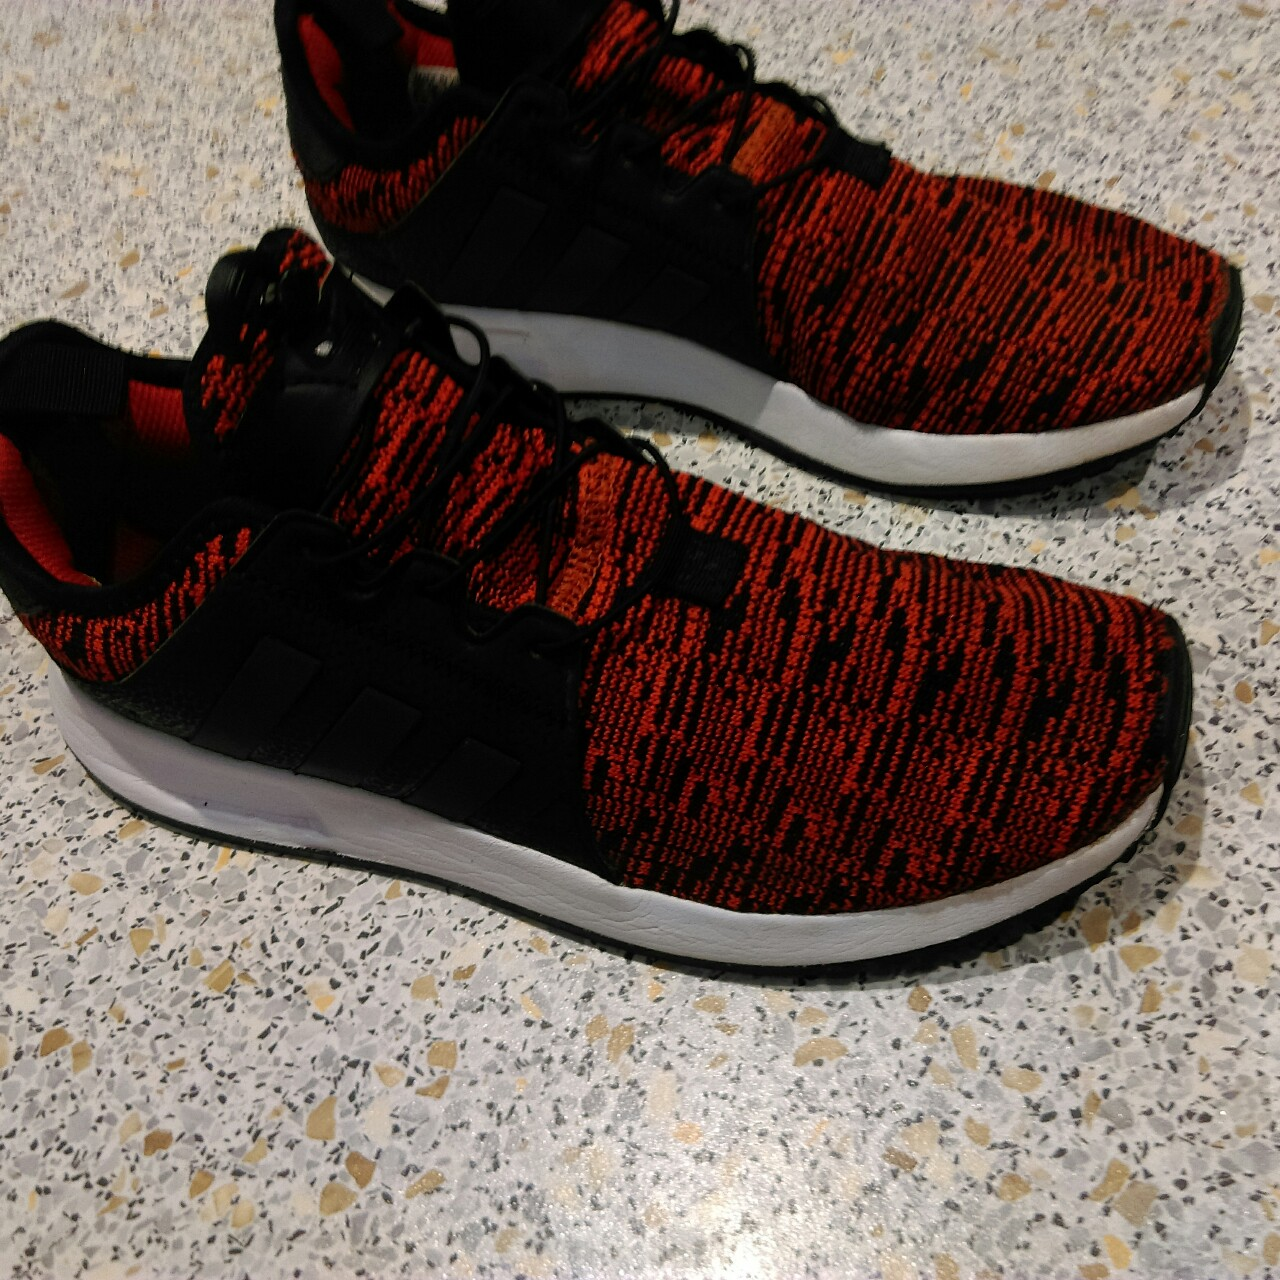 buy online 273a9 cc17d Adidas xplr red and black 25 pounds Dm for offers - Depop